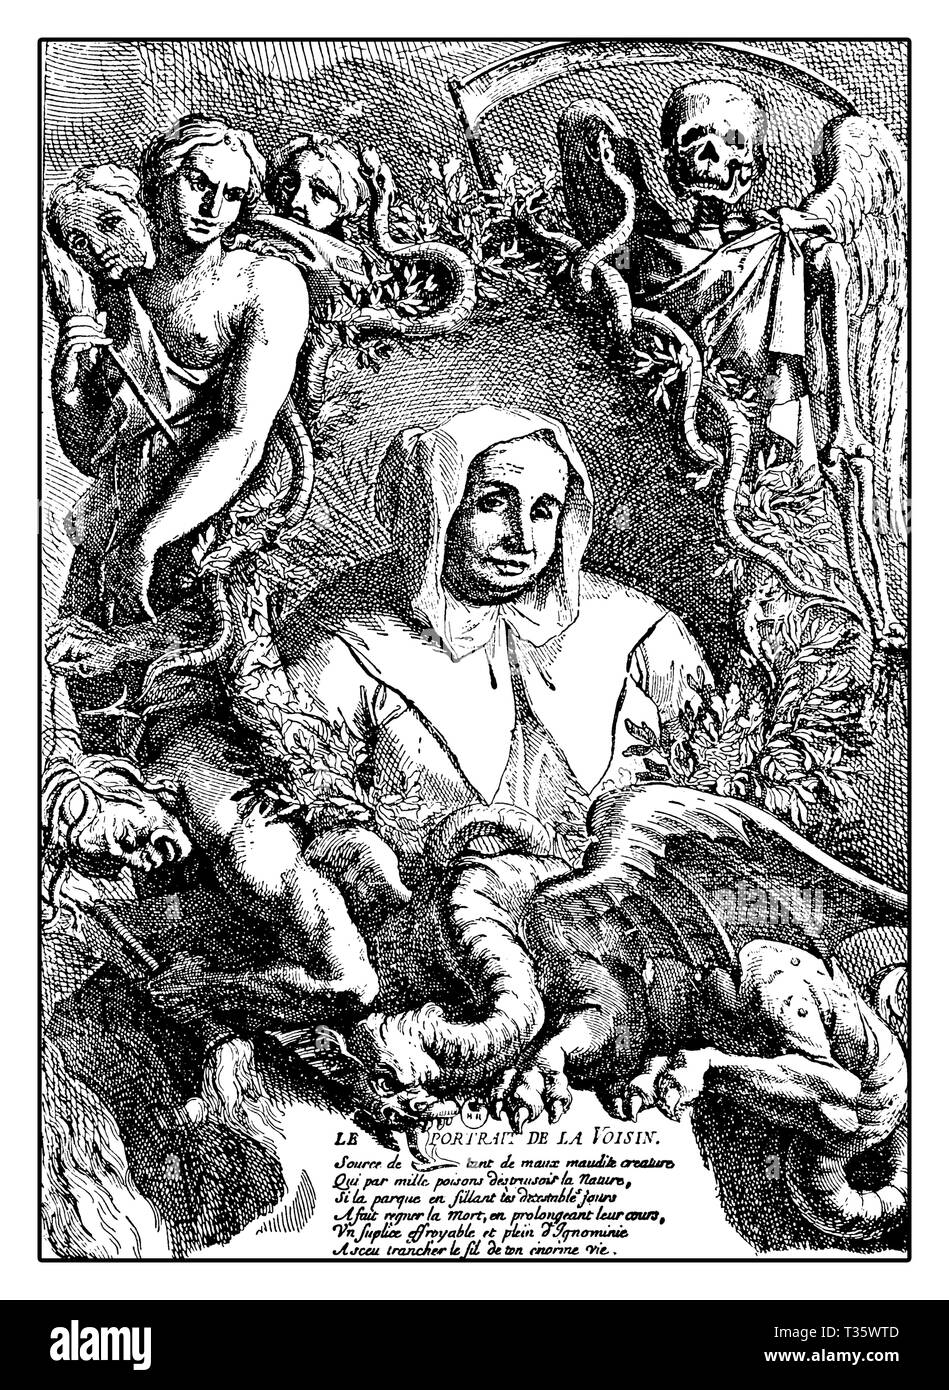 Allegorical portrait with winged devil of Catherine Monvoisin well renowned French poisoner of the XVII century,fortune teller, midwife, abortions provider and professional sorcery executed for witchcraft by burning at stake in 1680 - Stock Image